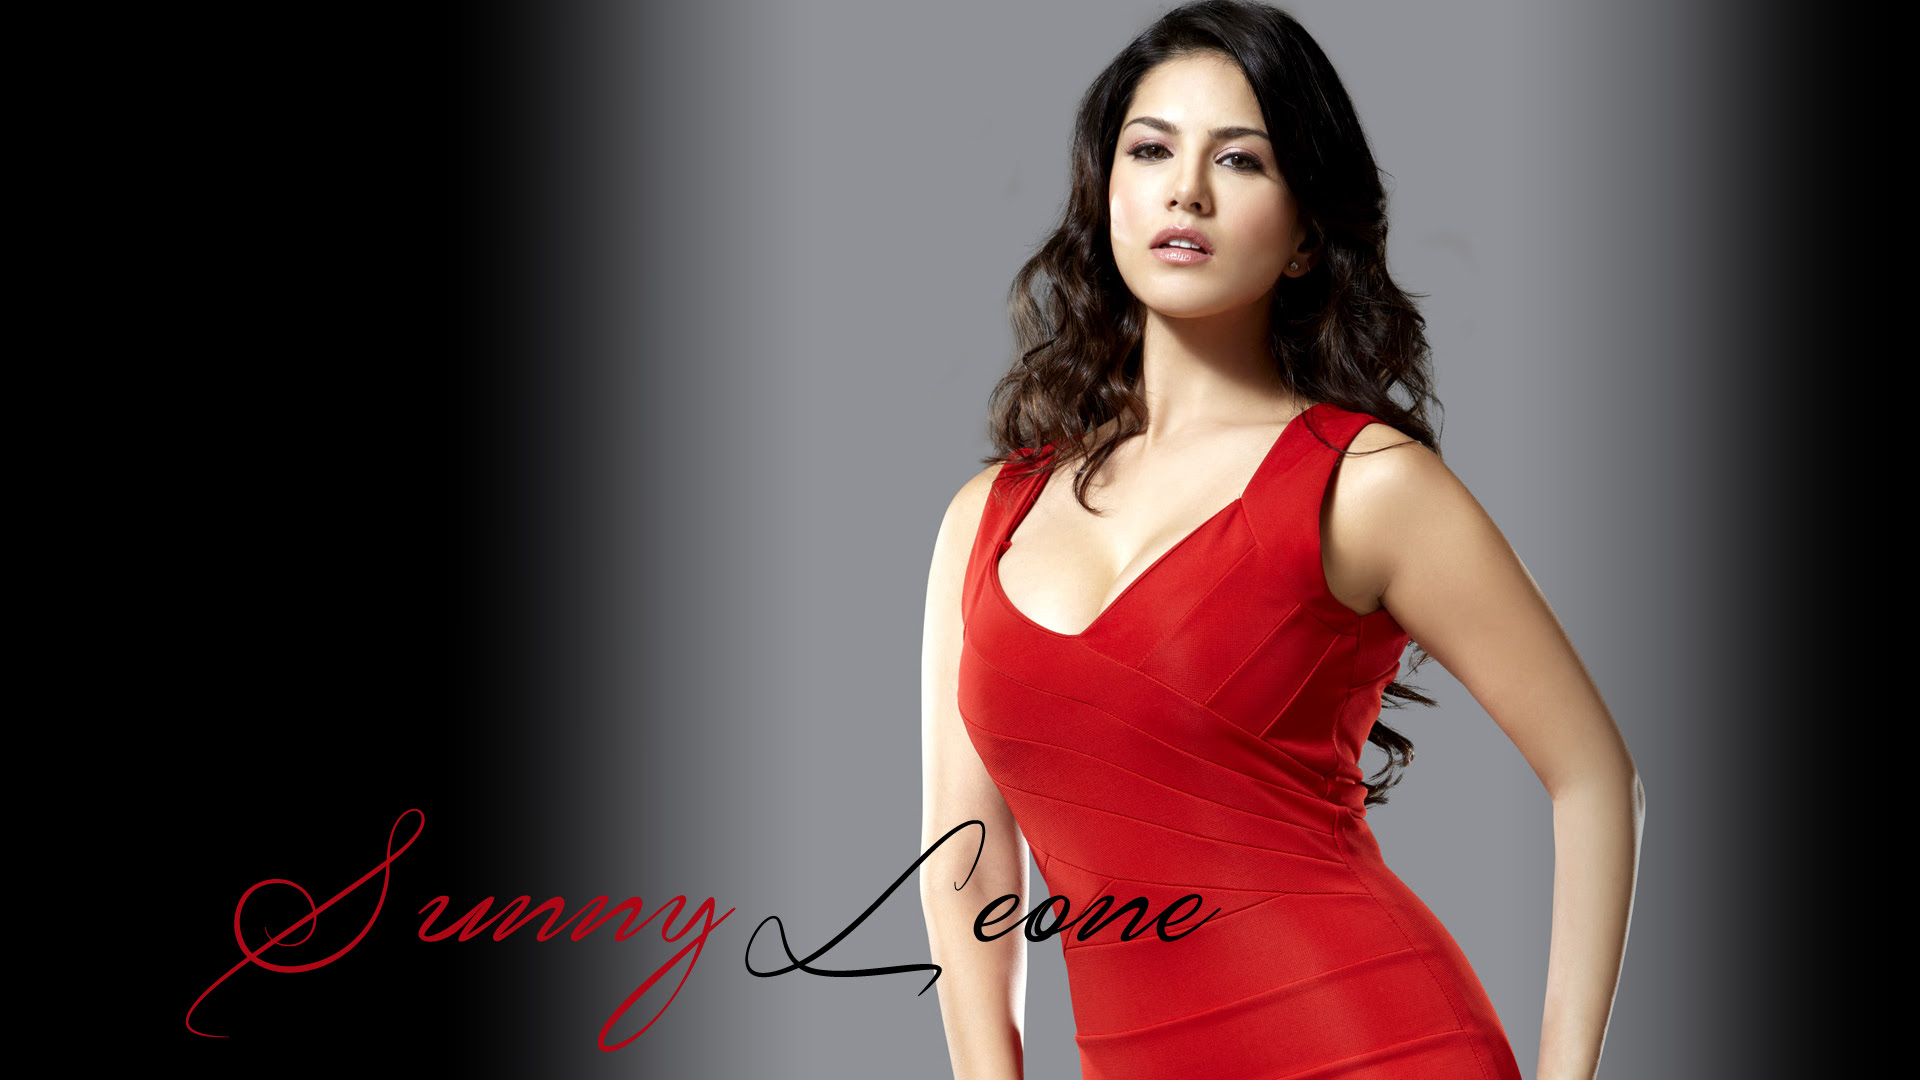 Sunny Leon HD Wallpaper picture image sexy hot